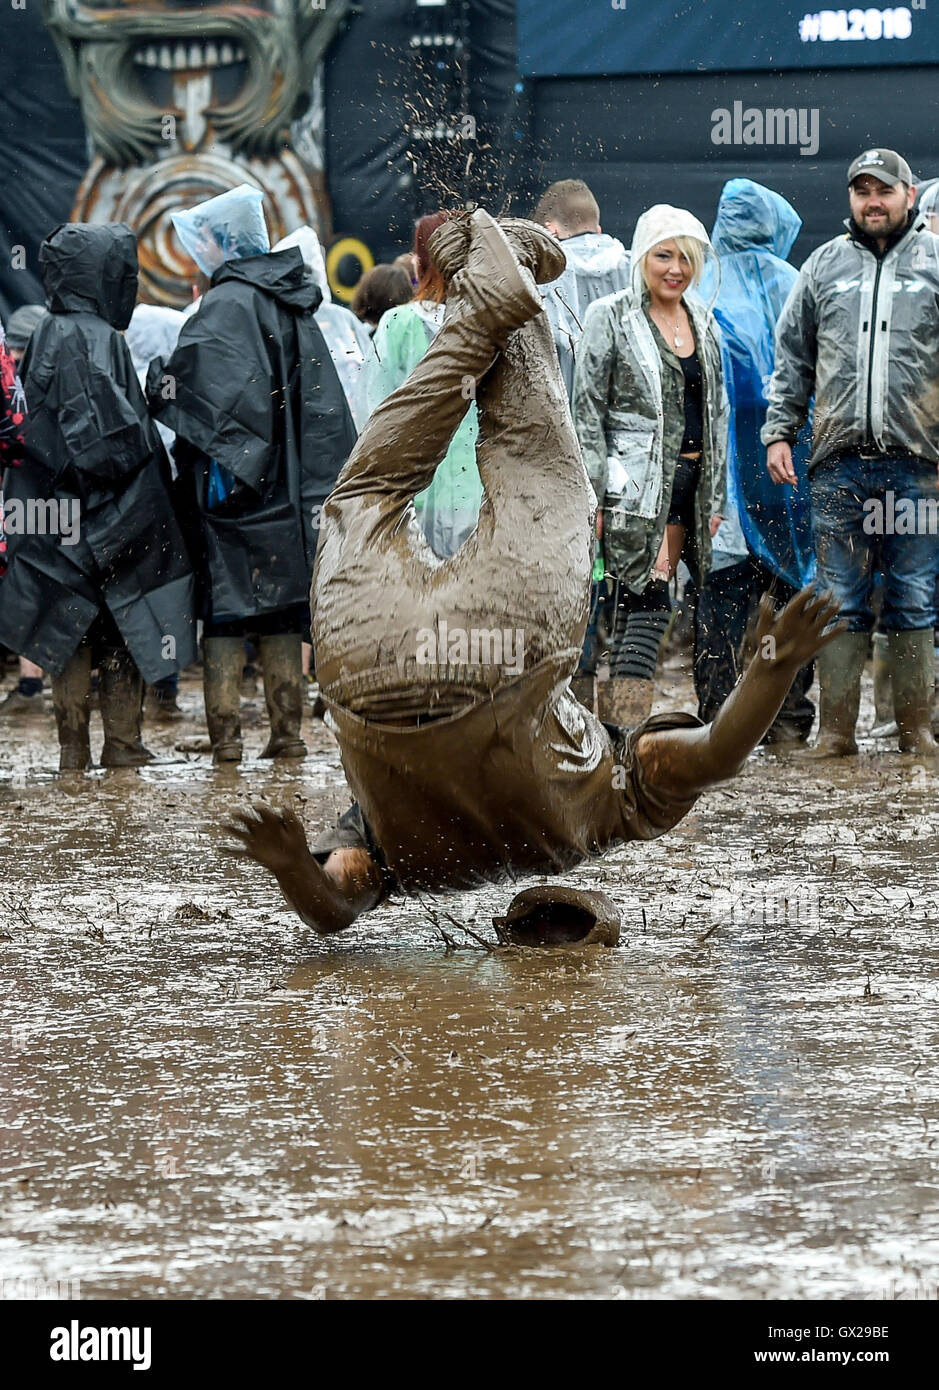 Download Festival revellers in the mud Featuring: Atmosphere